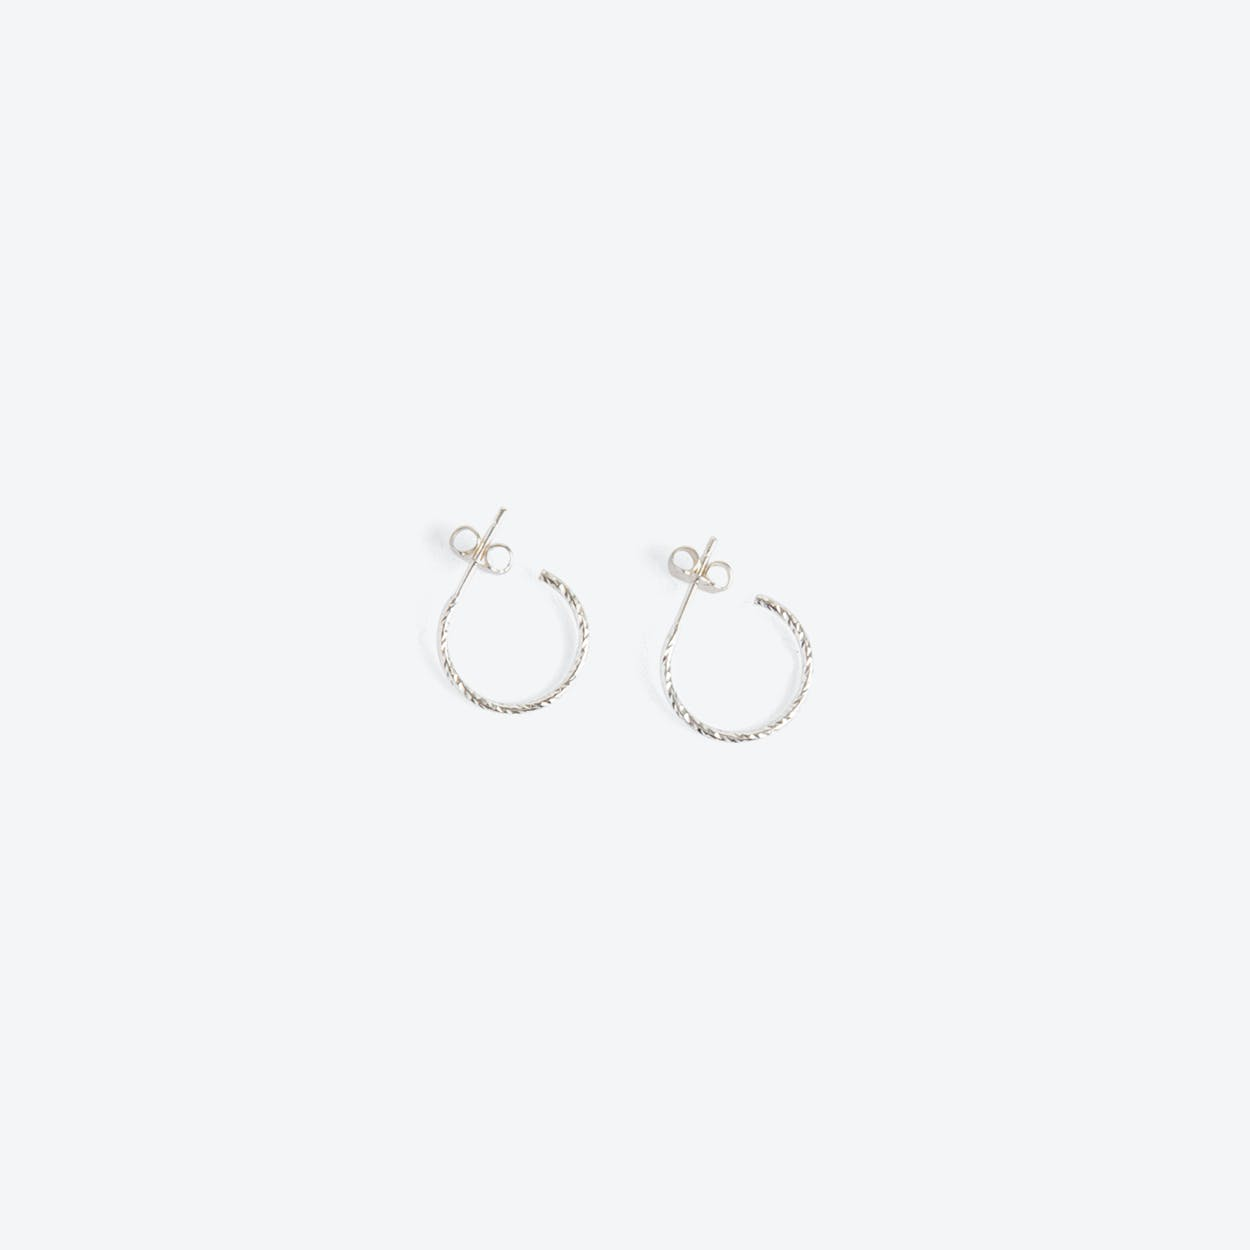 Mini Diamond Hoop Earrings in Silver